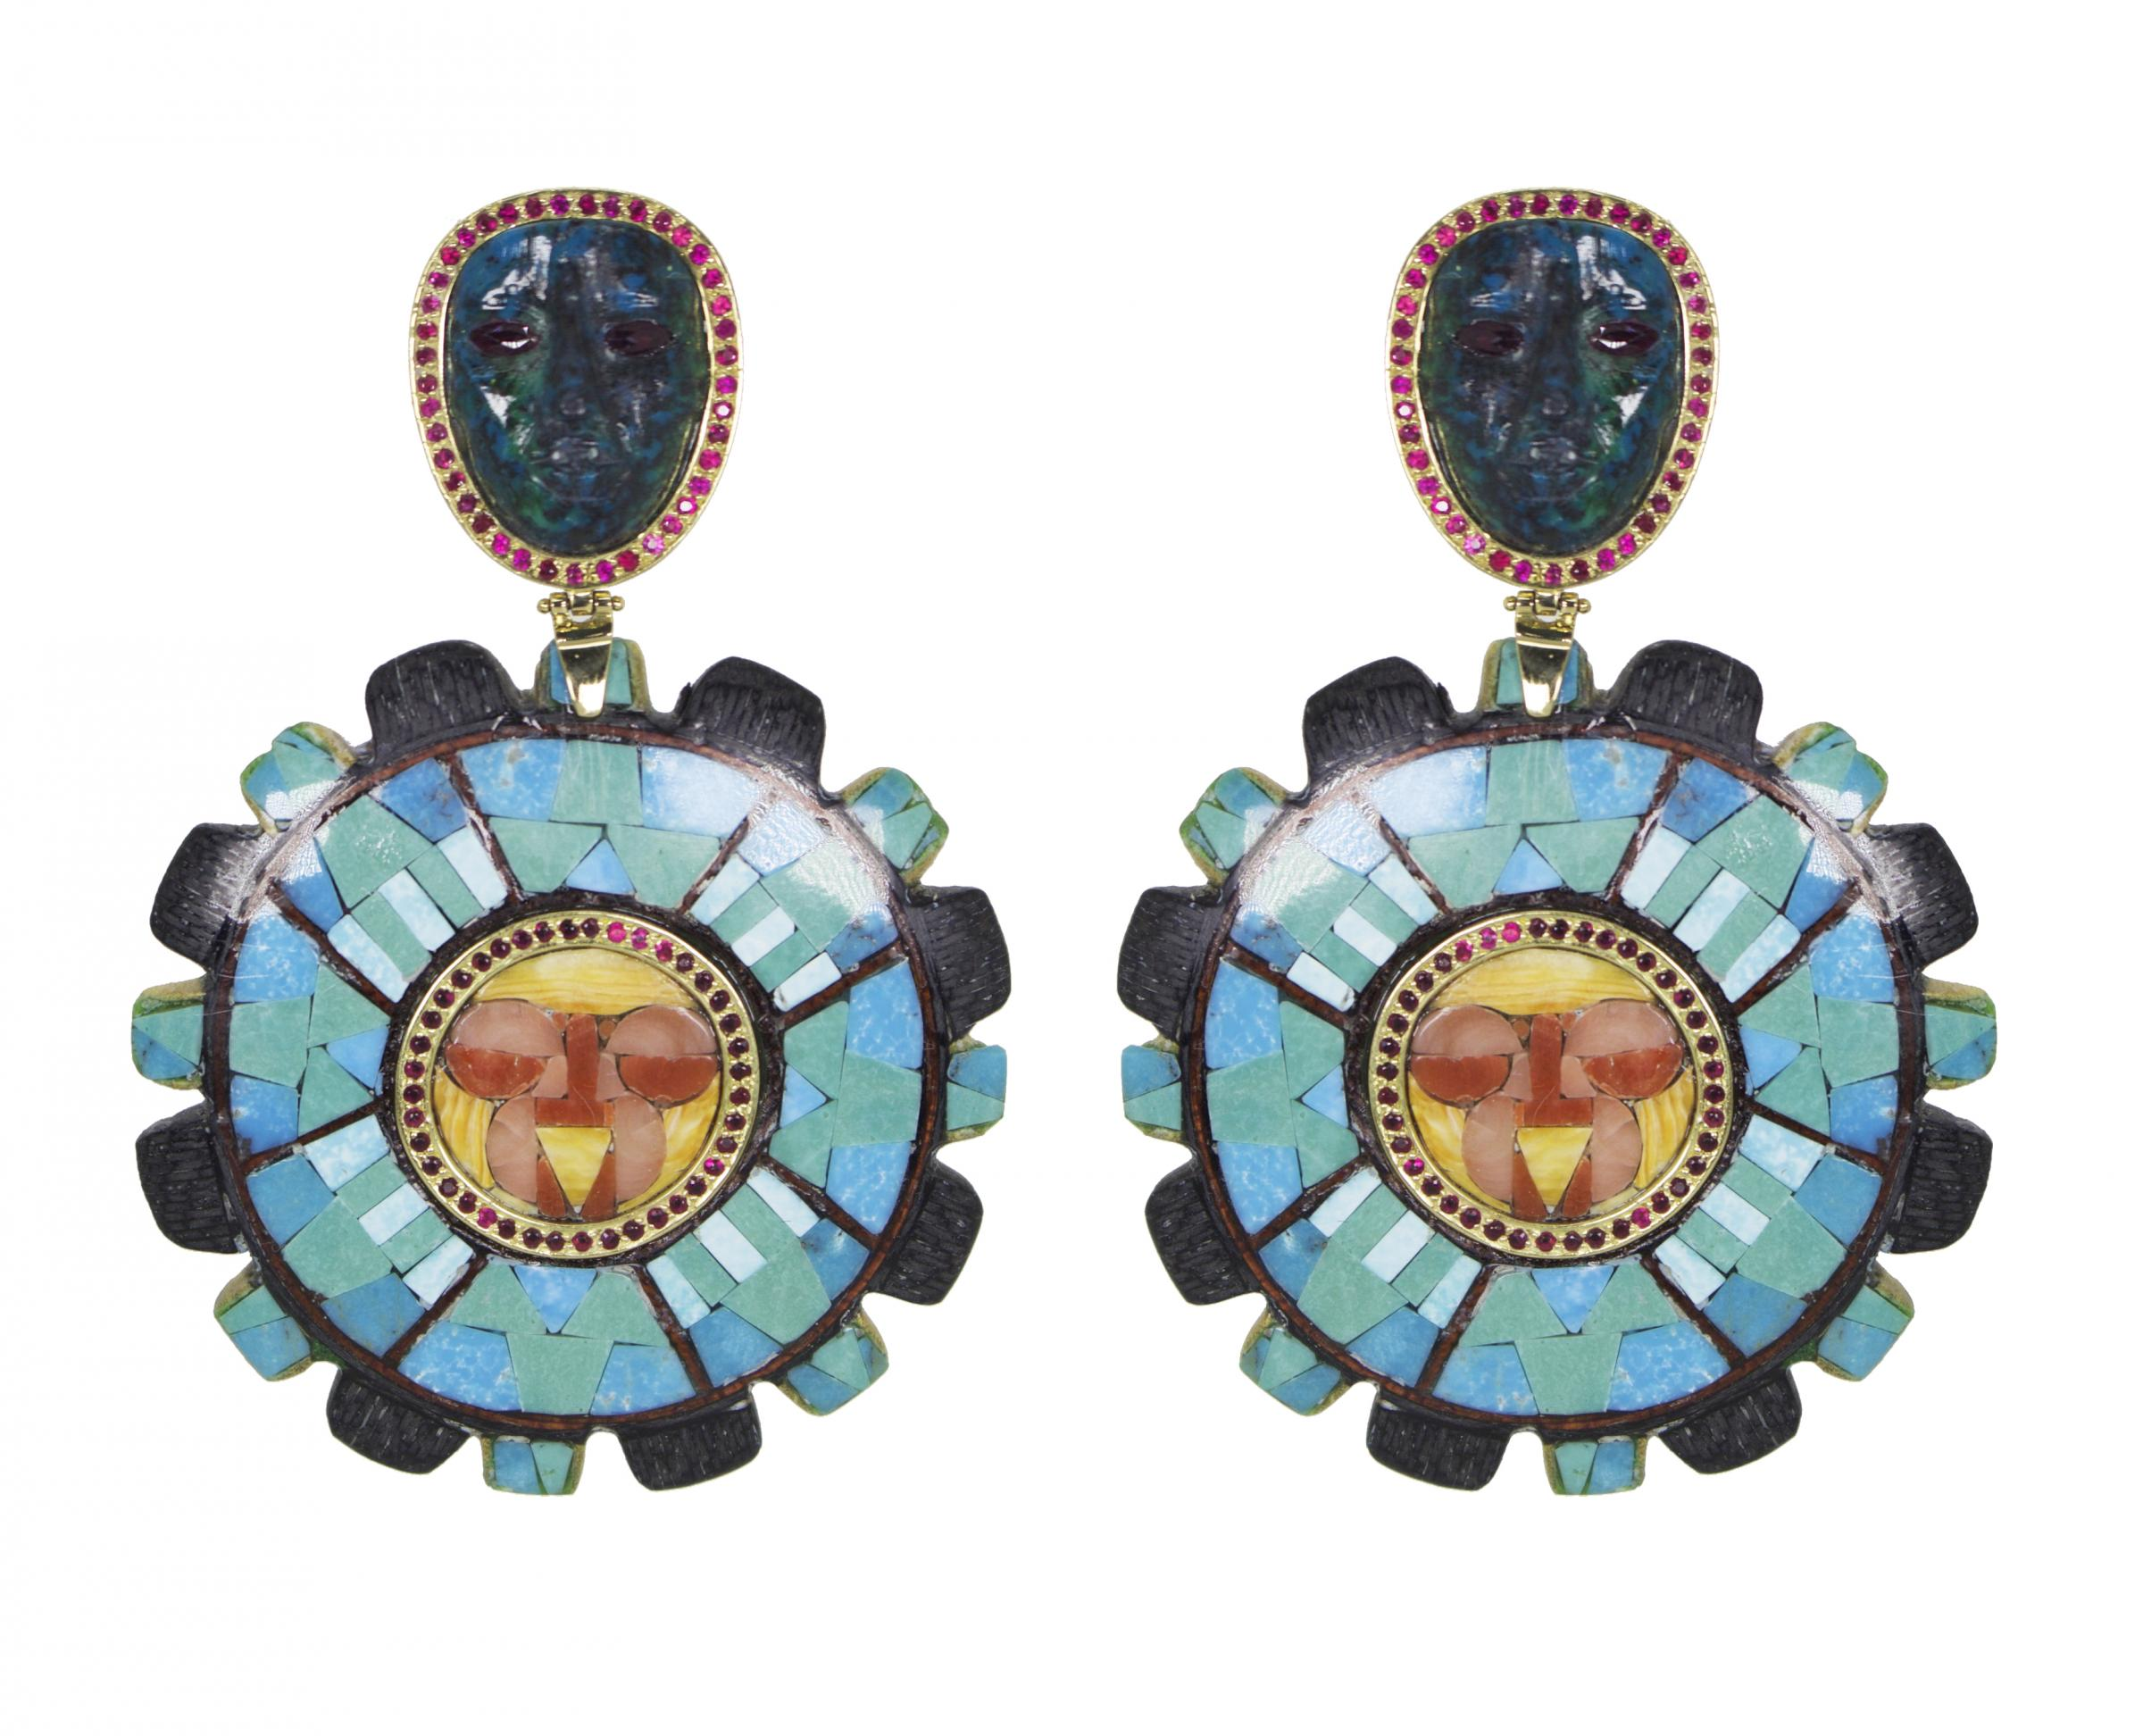 Blaiz, turquoise mask mosaic earrings, £2,500